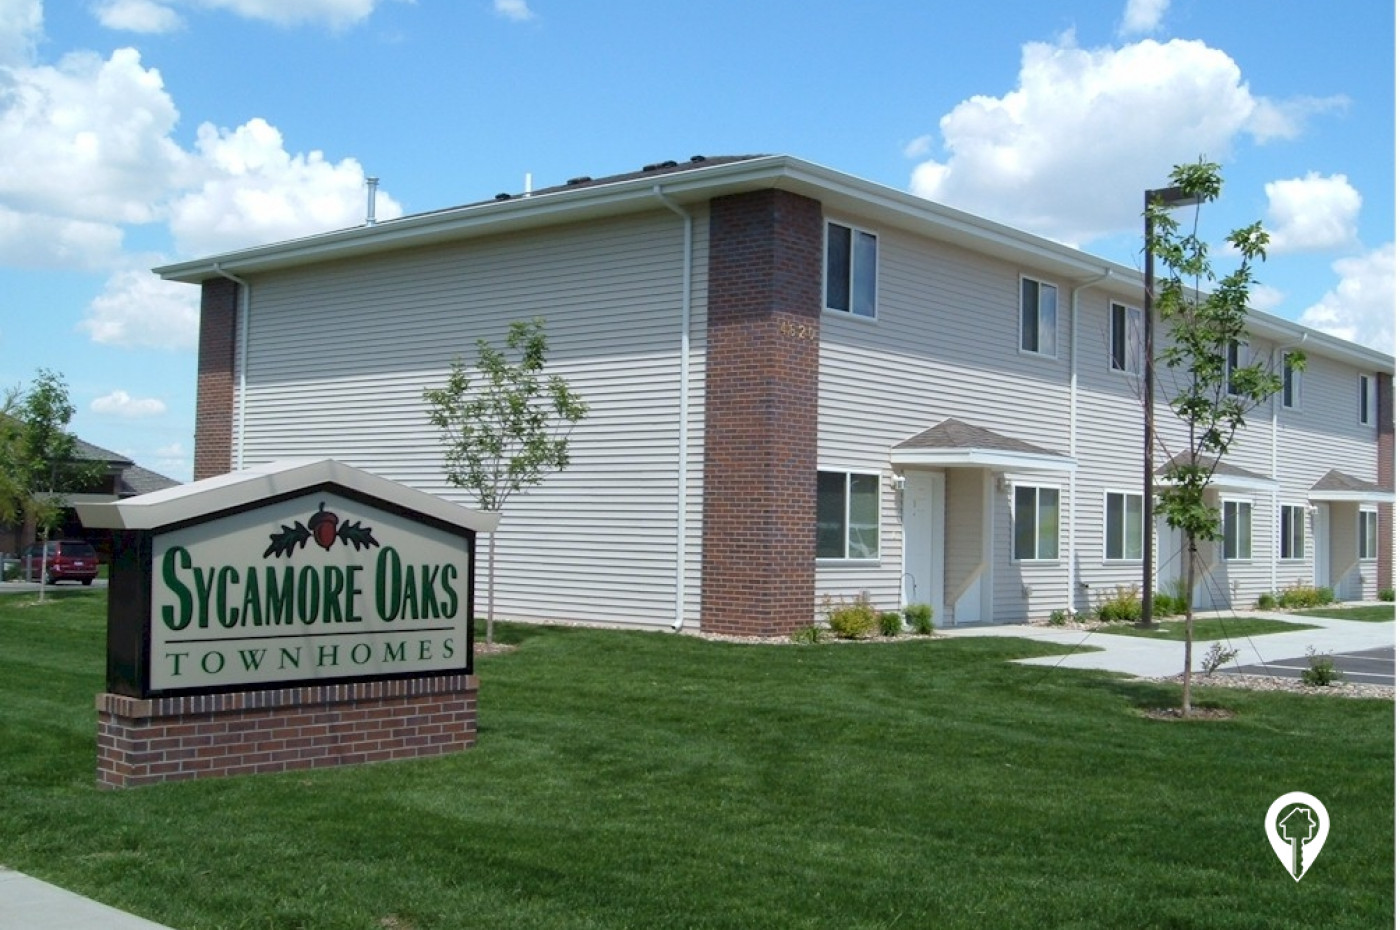 Great Plains Property Management - Sycamore Oaks Townhomes